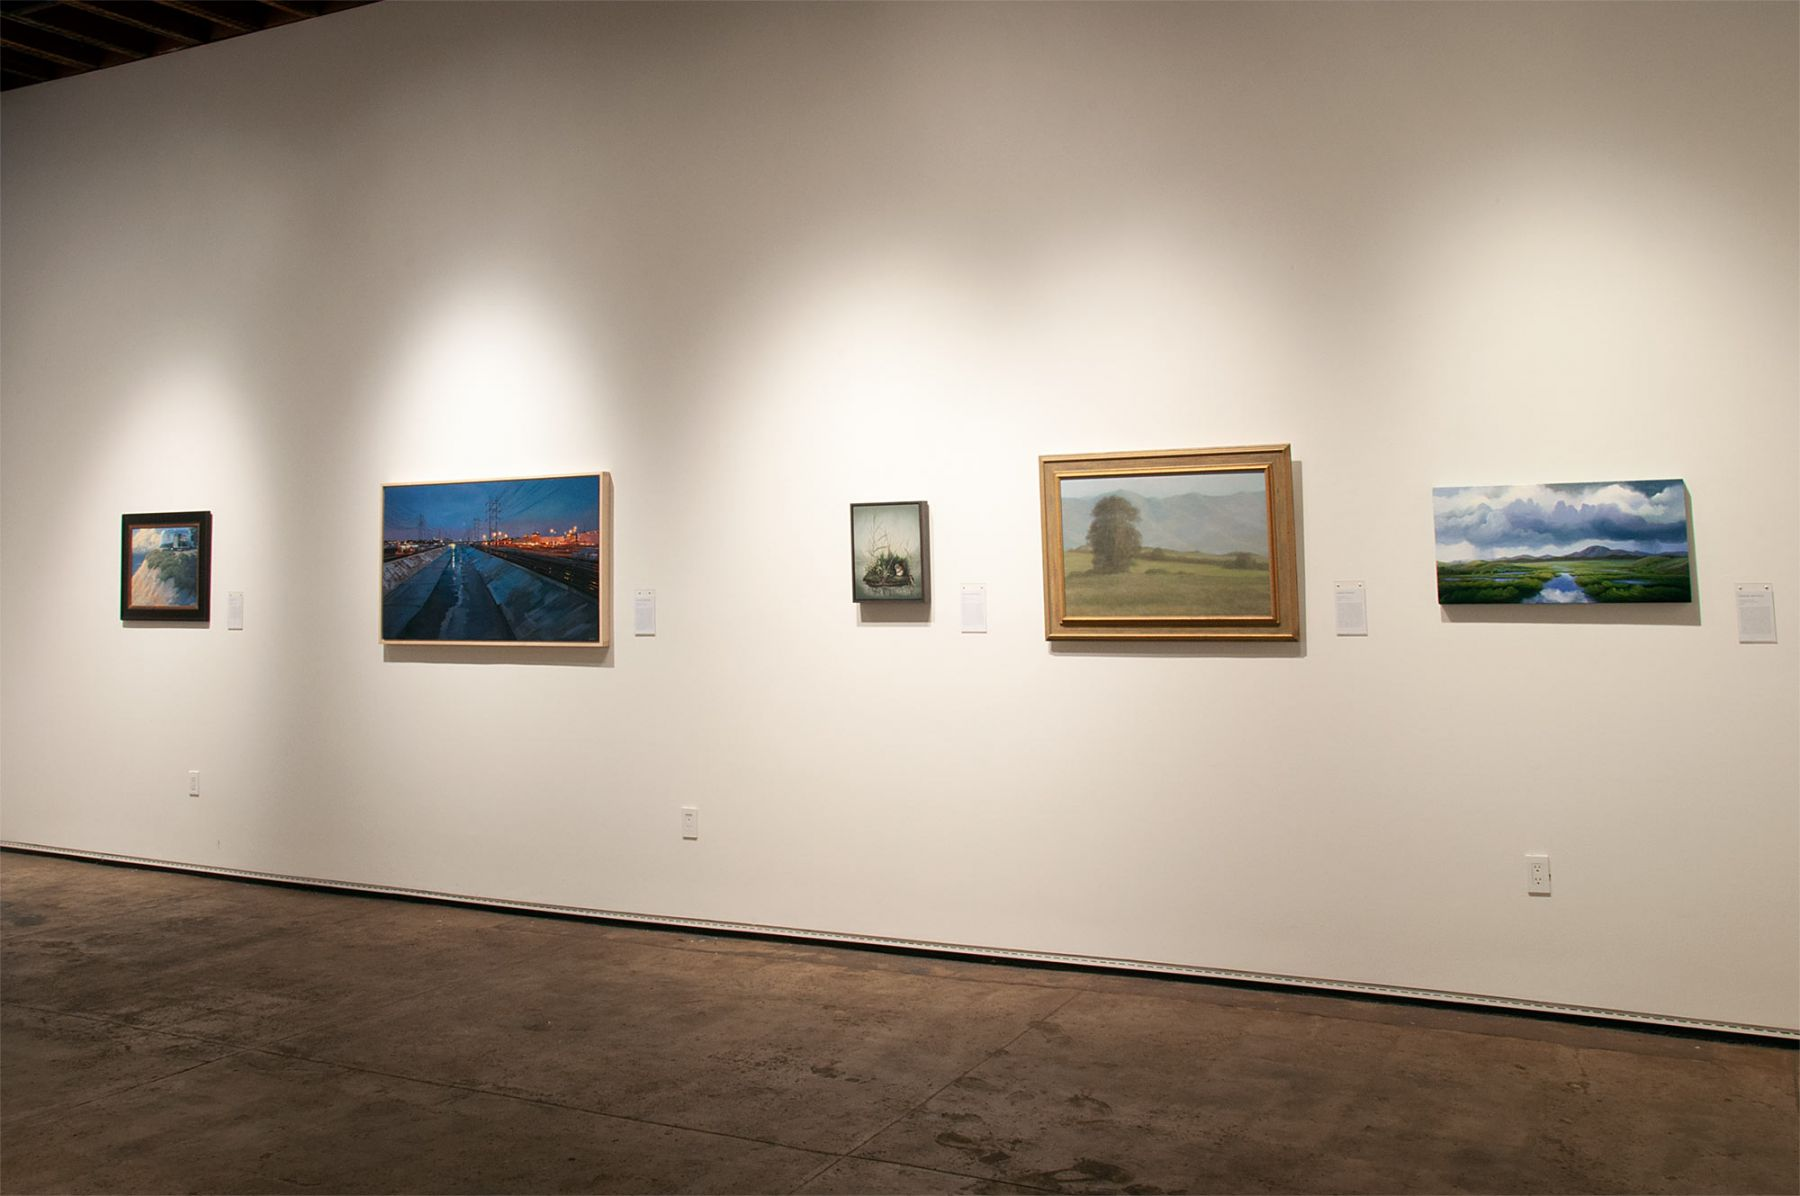 MASTERWORKS OF THE ARTISTS OF SULLIVAN GOSS exhibition, Jon Francis, Patricia Chidlaw, Susan McDonnell, Sarah Vedder, Phoebe Brunner